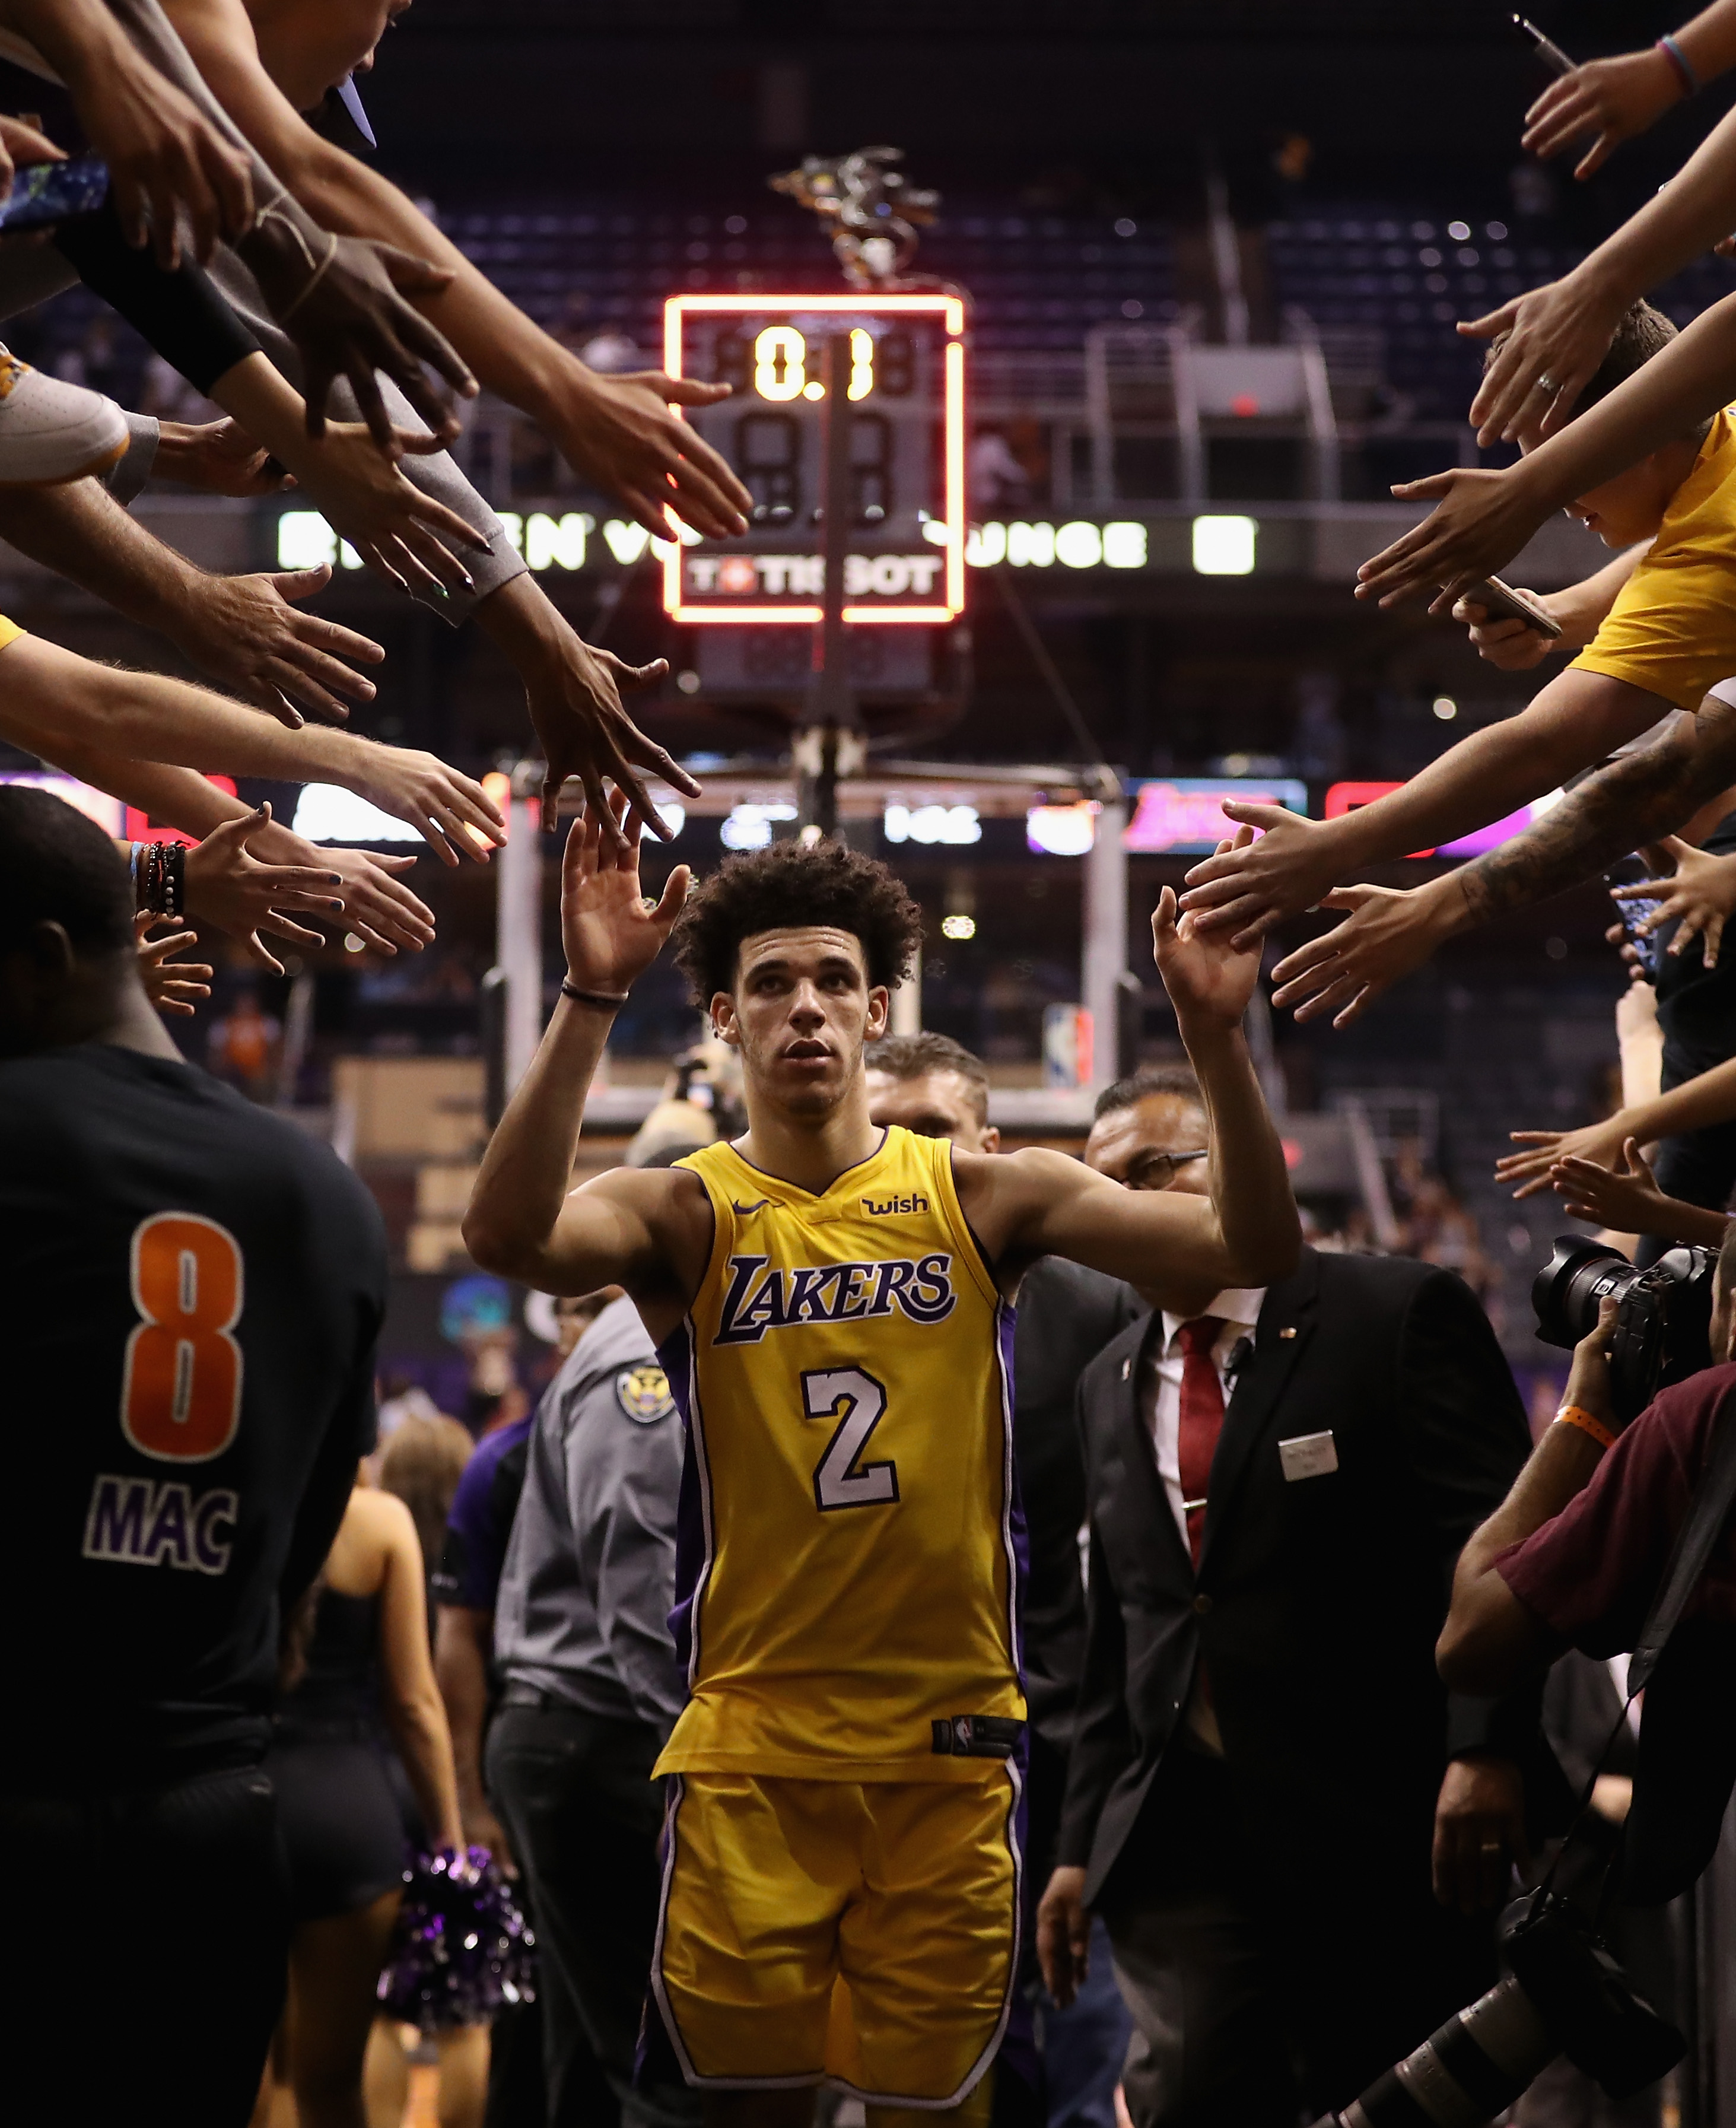 PHOENIX, AZ - OCTOBER 20: Lonzo Ball #2 of the Los Angeles Lakers high fives fans as he walks off the court following the NBA game against the Phoenix Suns at Talking Stick Resort Arena on October 20, 2017 in Phoenix, Arizona. (Photo by Christian Petersen/Getty Images)